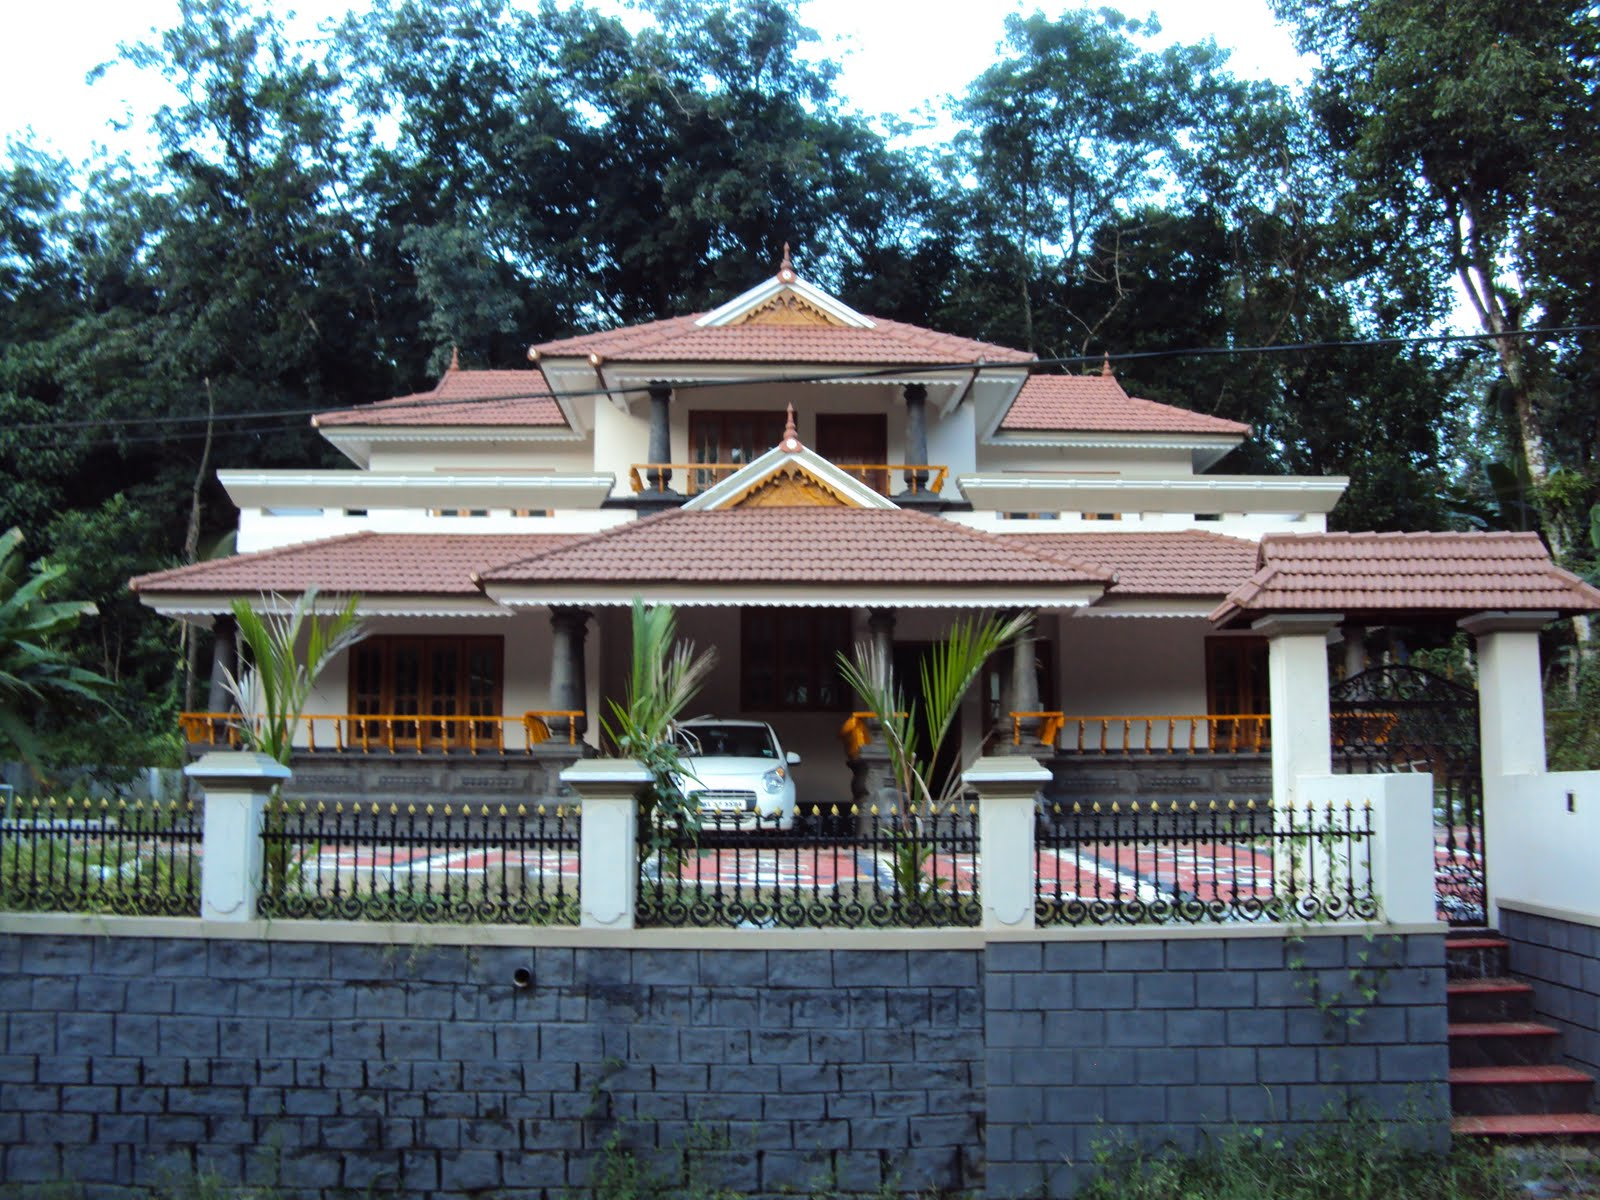 New house for sale near aranmula airport august 2011 for New house cost